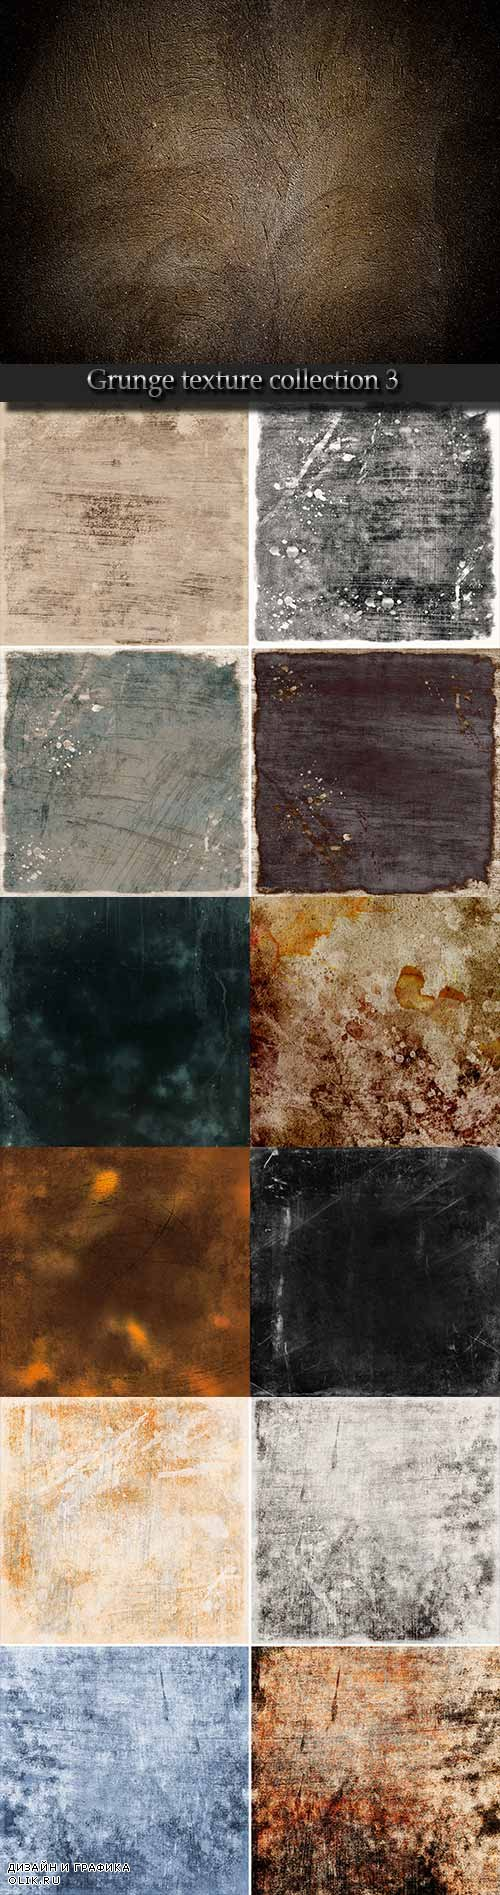 Grunge texture collection 3